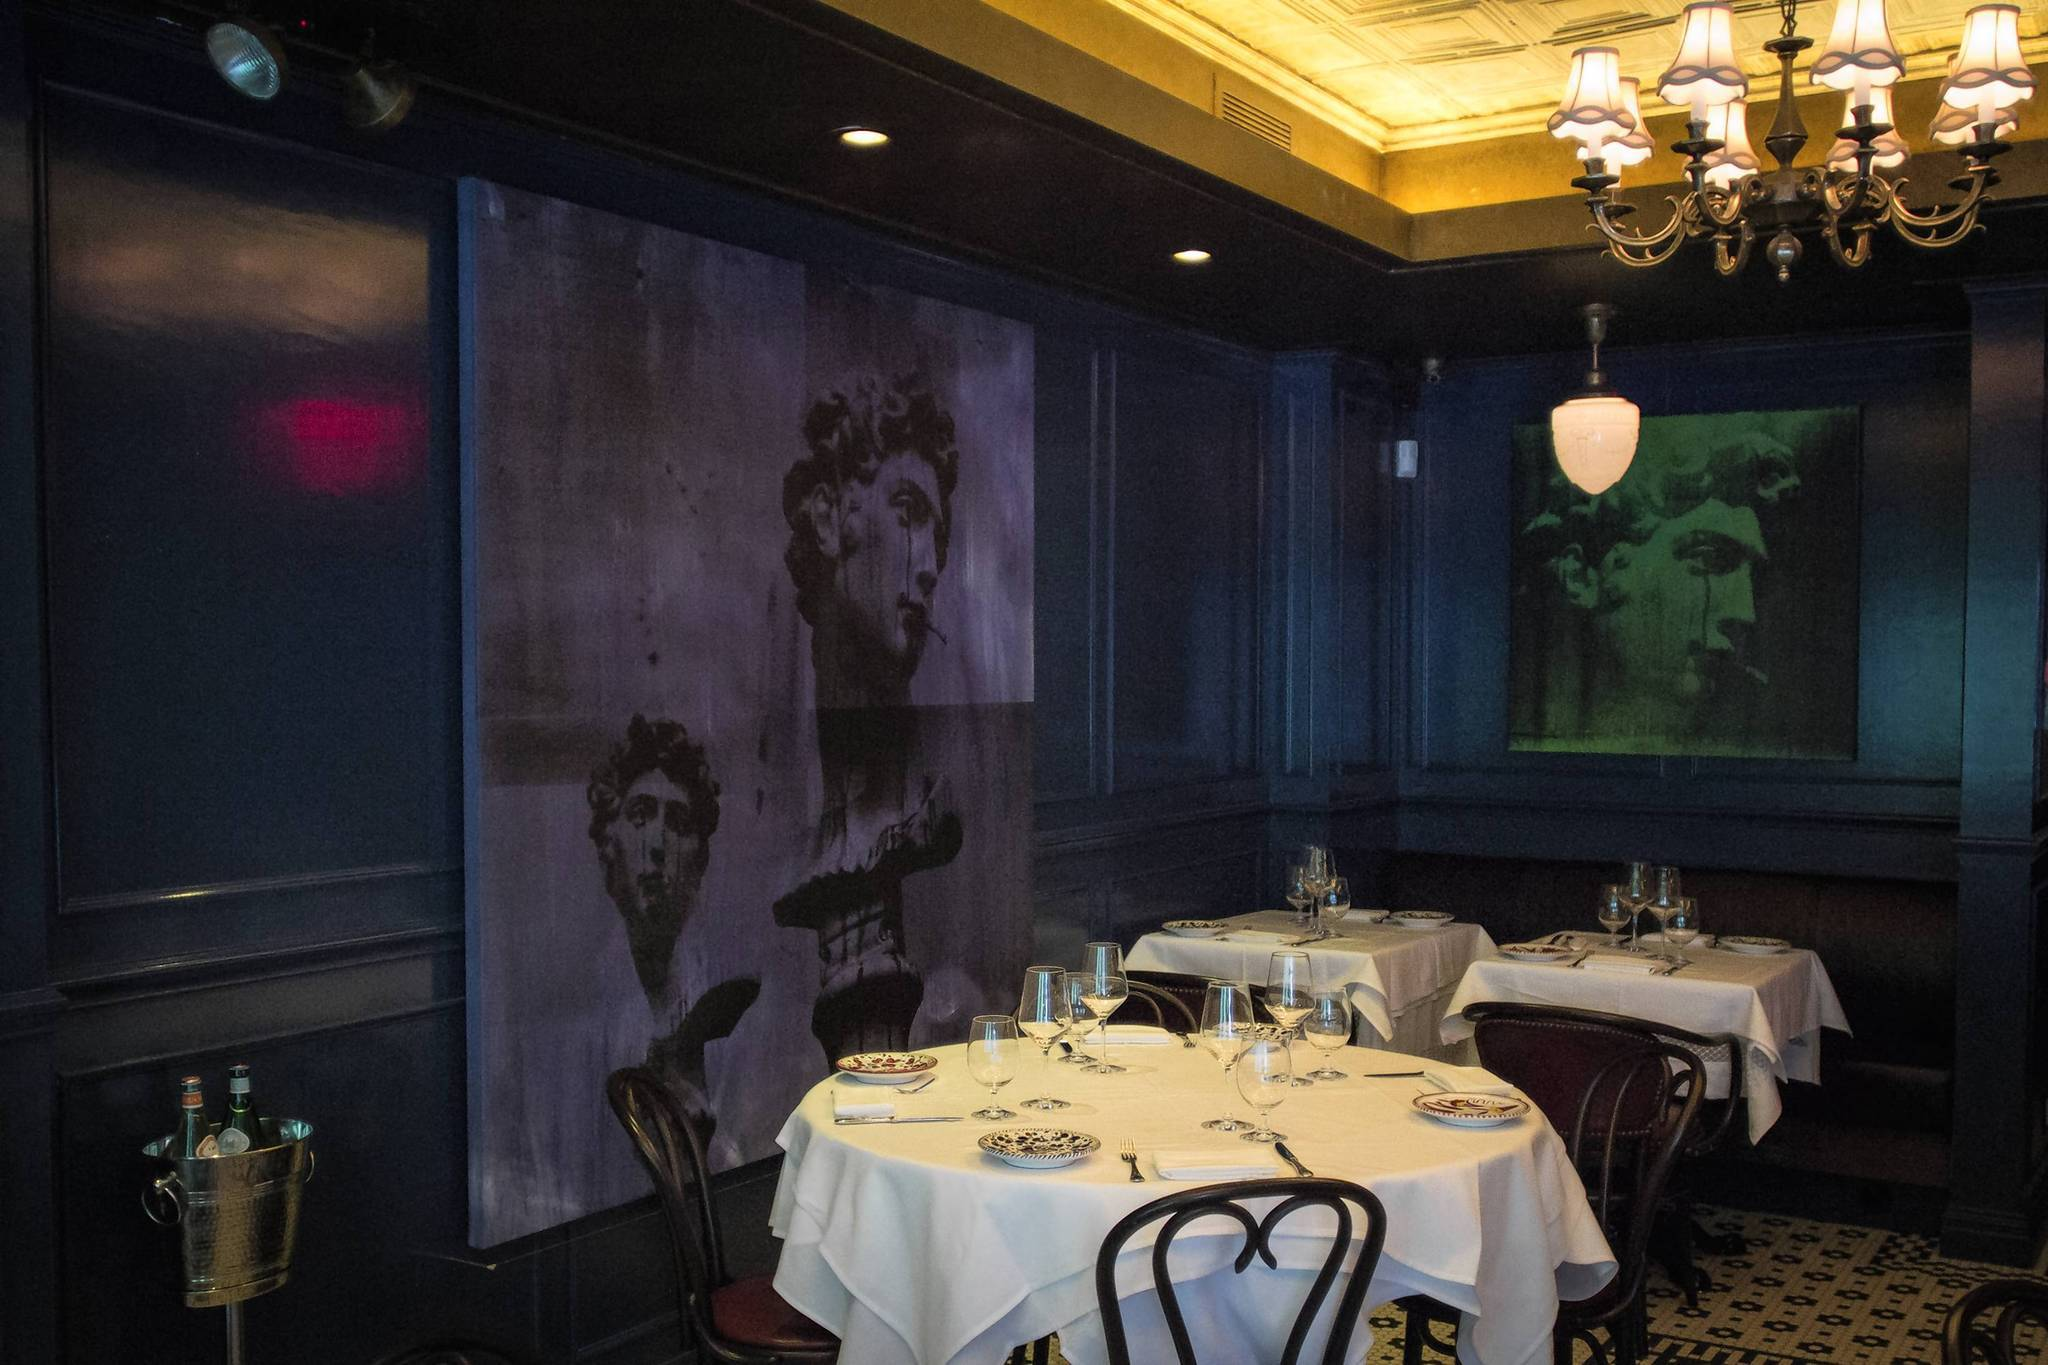 New York's latest must-try spot